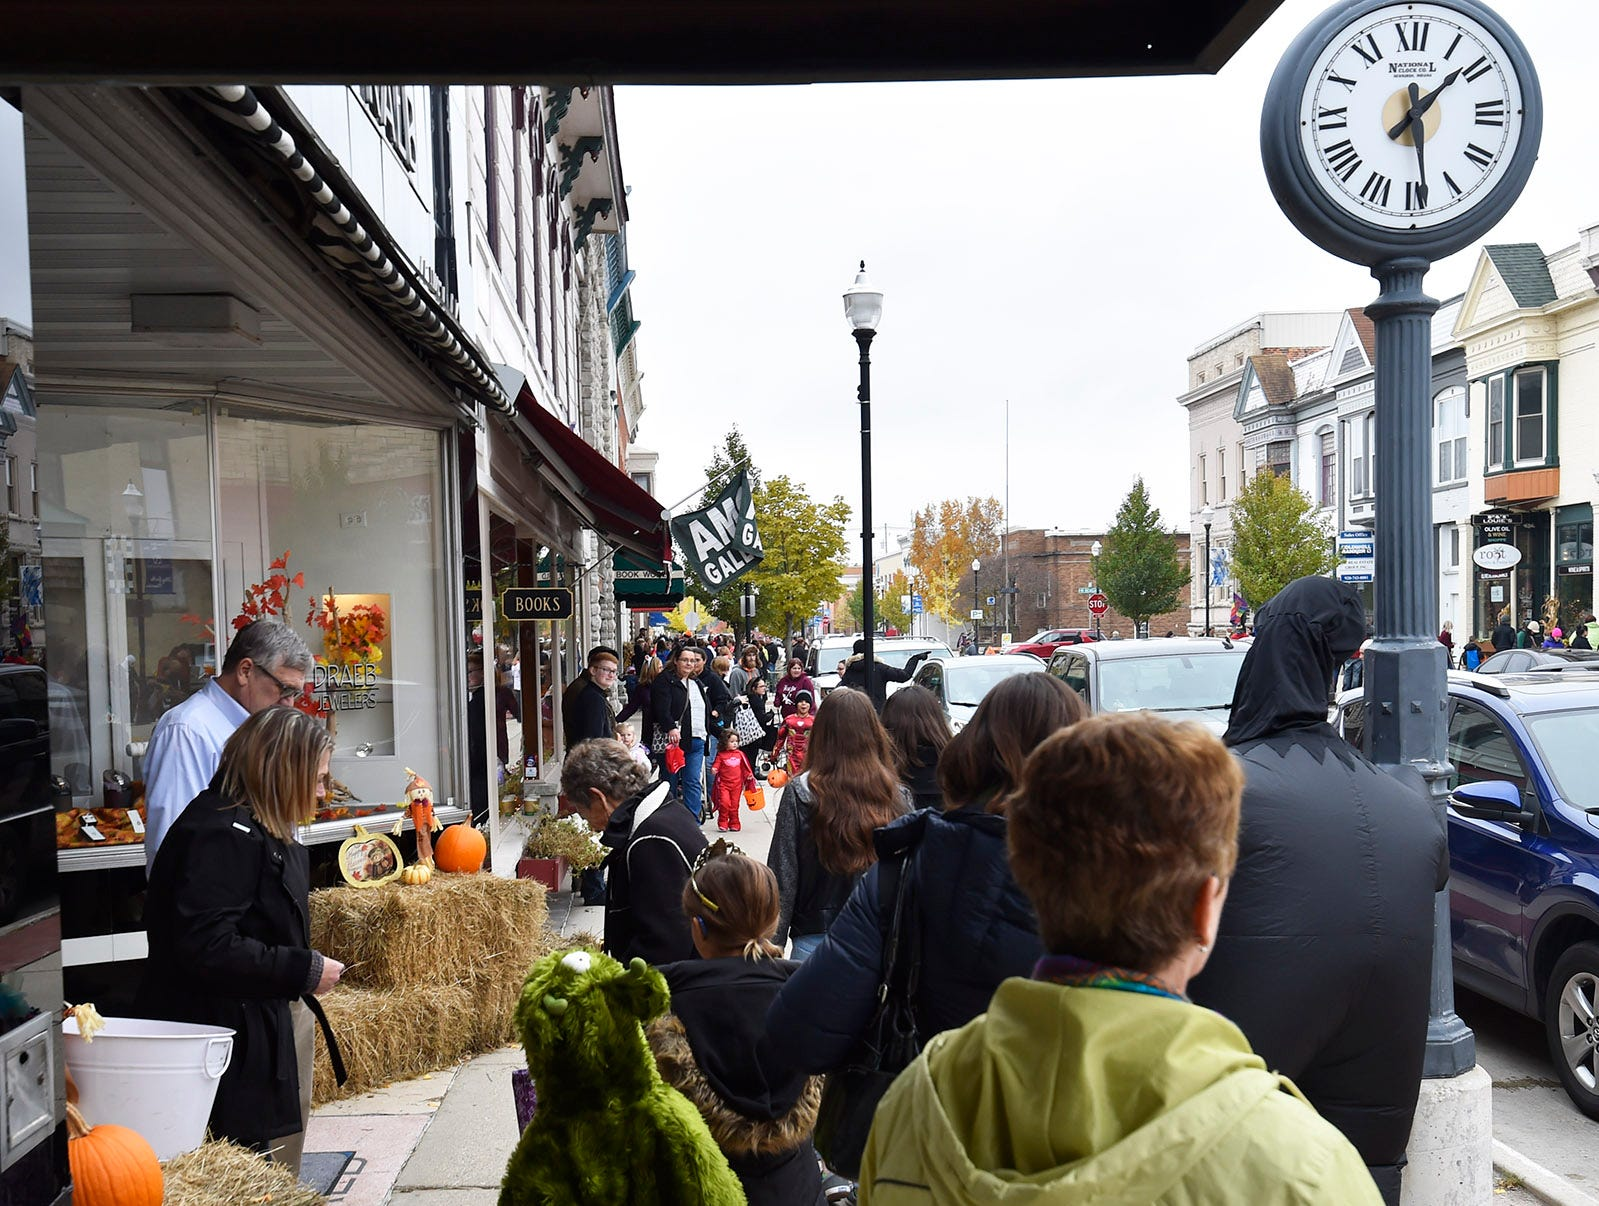 Businesses hand out candy following the Thrills on Third costume parade on Saturday, Oct. 27, 2018, in Sturgeon Bay. Tina M. Gohr/USA TODAY NETWORK-Wisconsin